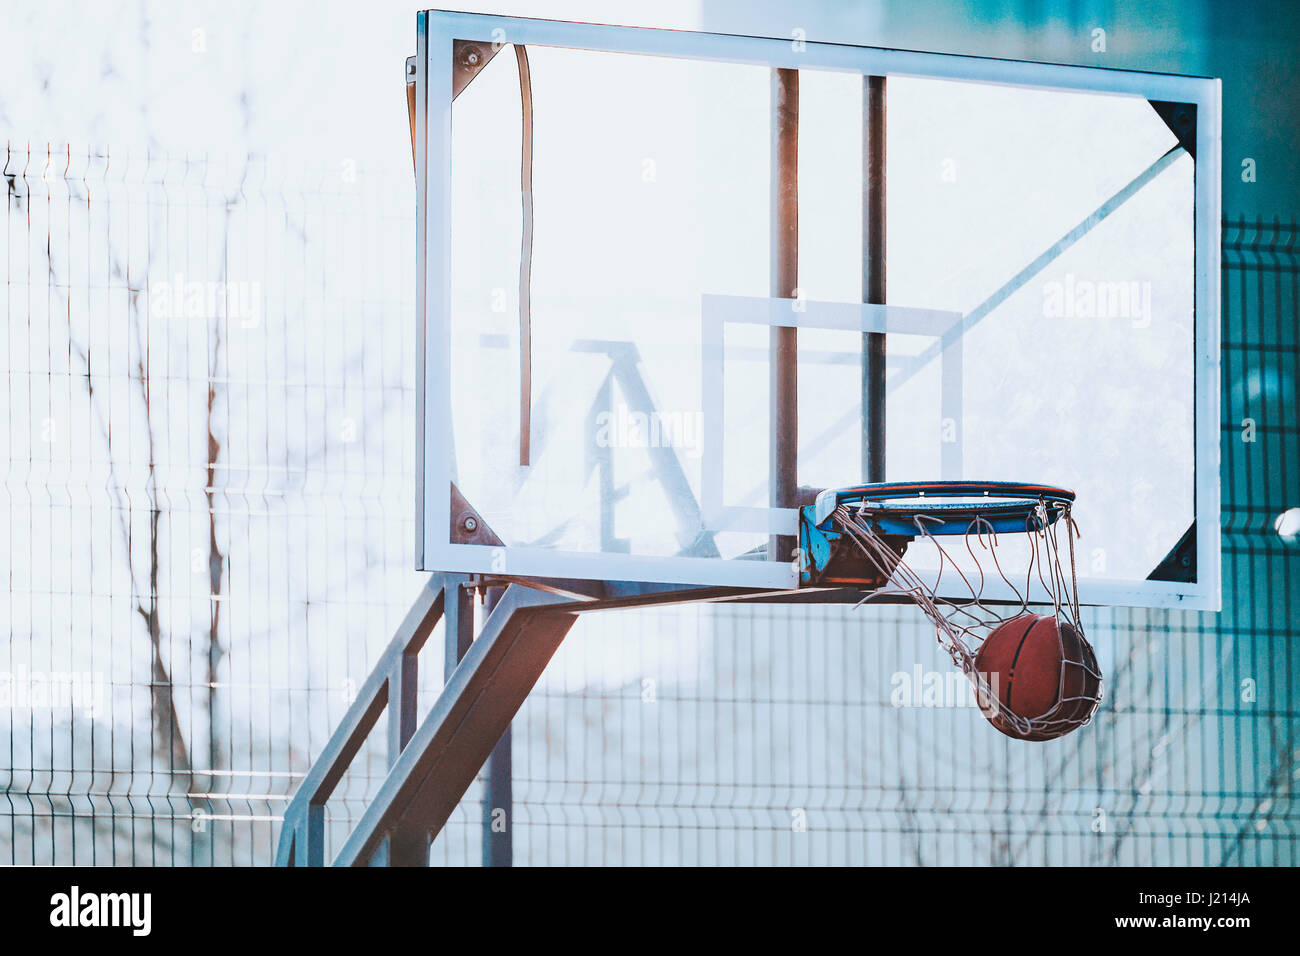 Background image of outdoor playground basketball court - Stock Image